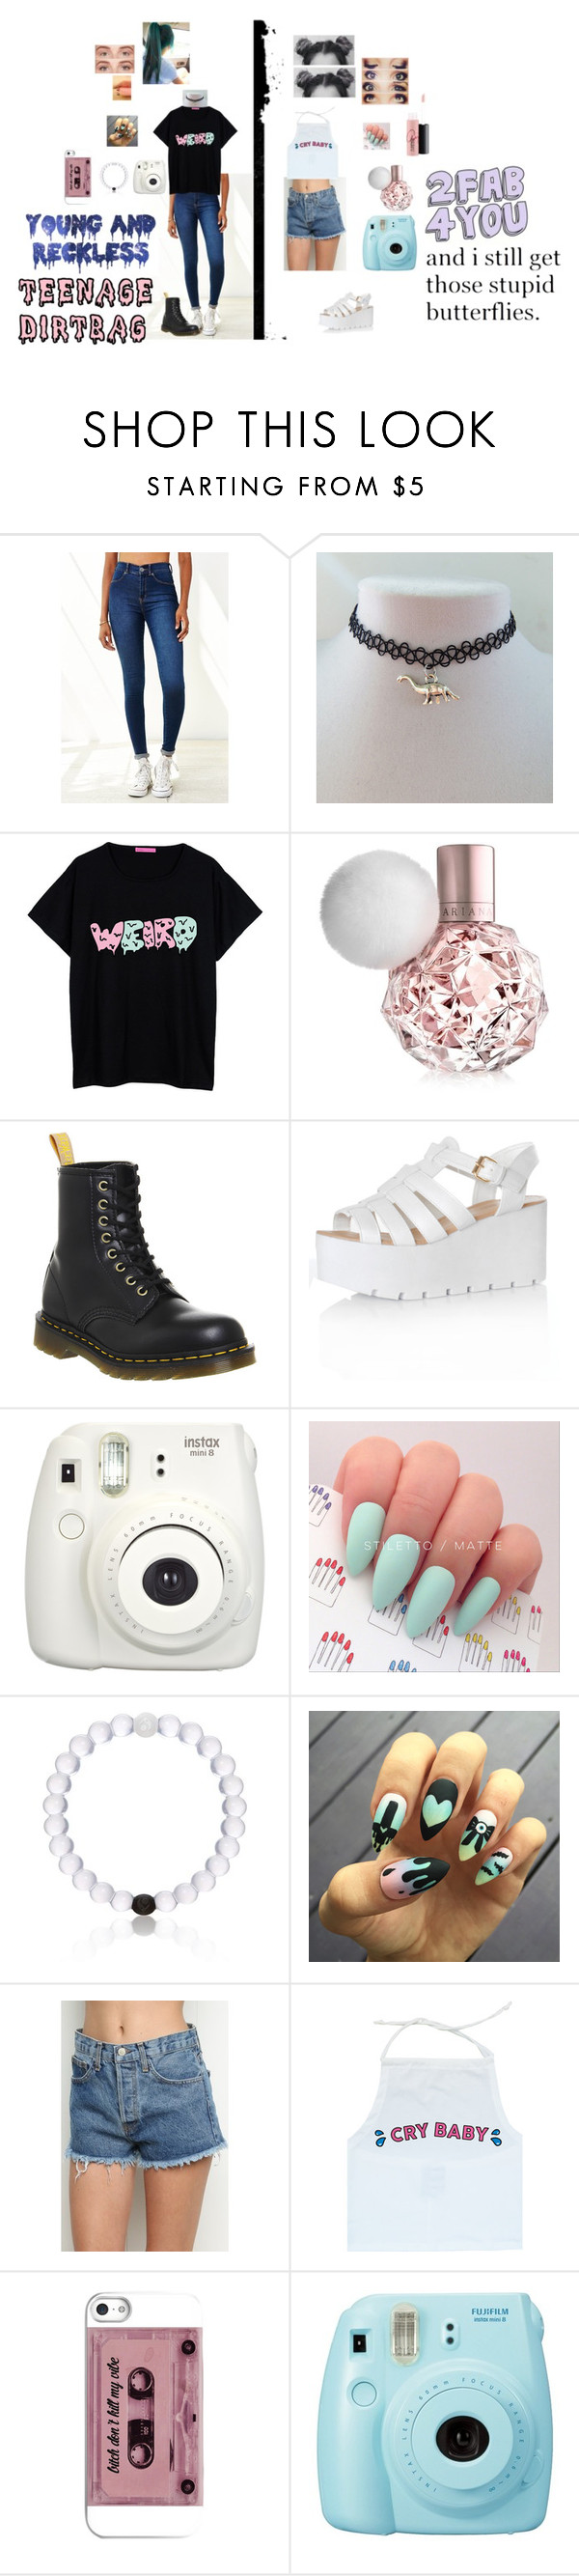 """#0059"" by lovelyalienbabe ❤ liked on Polyvore featuring Dr. Denim, Dr. Martens, Glamorous, Everest, Young & Reckless, Fuji, Benefit, tumblr, girly and opposites"